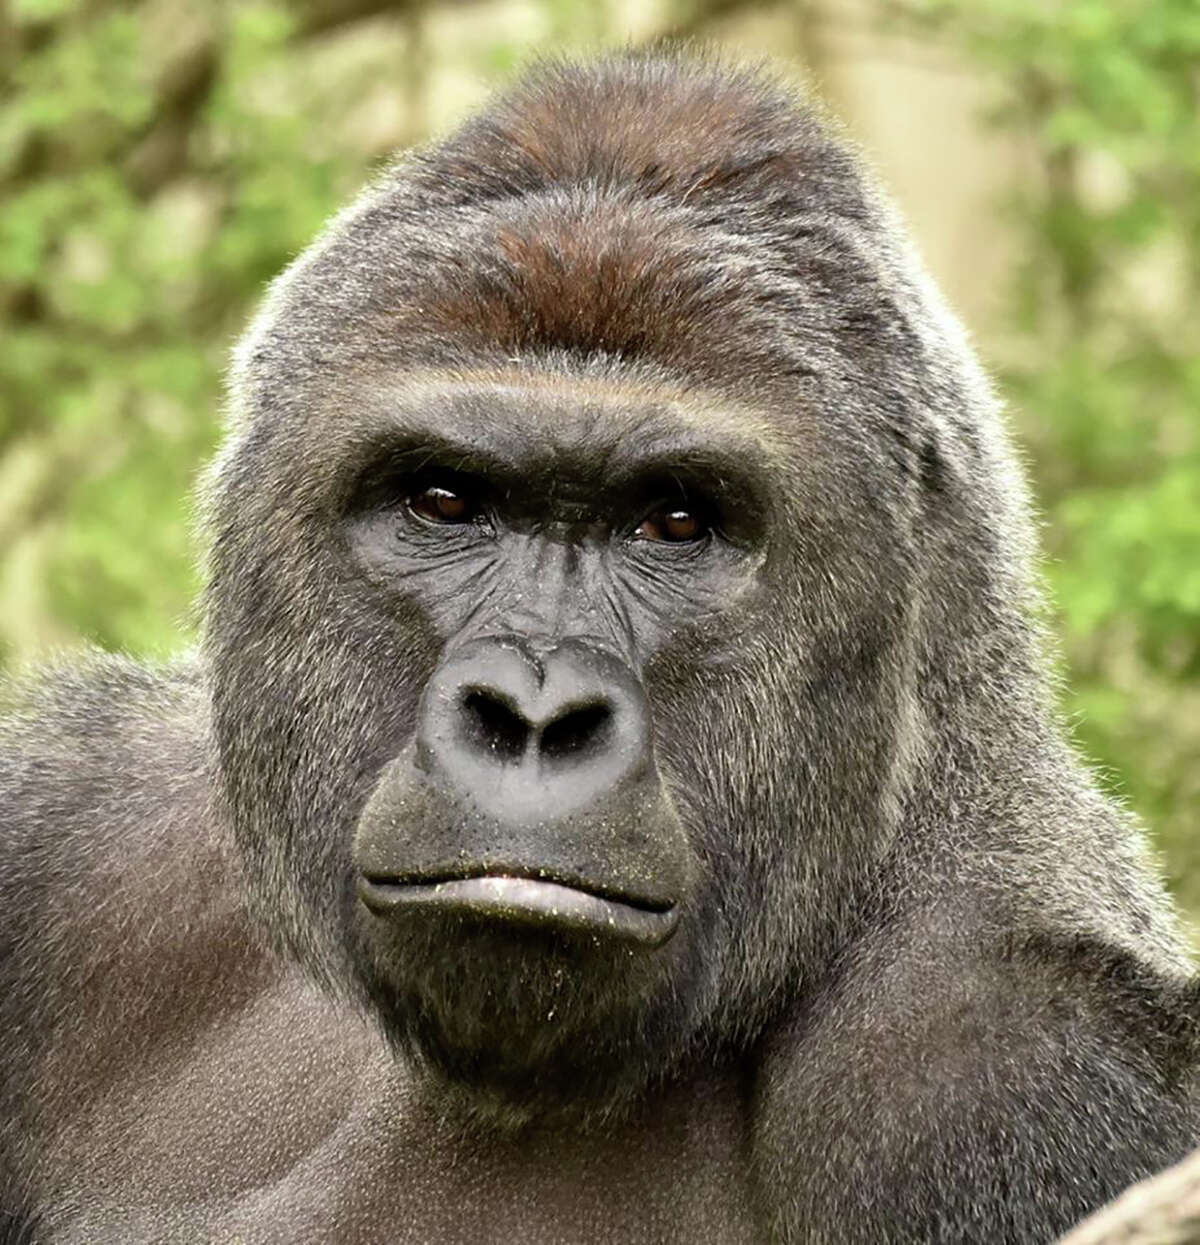 (FILES) This undated file photo courtesy of the Cincinnati Zoo, obtained on May 30, 2016, shows gorilla Harambe. The parents of a toddler who fell into a gorilla enclosure at an Ohio zoo in the US state of Ohio last month will not face charges, a prosecutor said June 6, 2016. The family faced an outburst of criticism after keepers were forced to shoot the rare 400-pound (180 kilogram) animal to rescue the three-year-old boy during the incident at the Cincinnati Zoo. / AFP PHOTO / CINCINNATI ZOO & BOTANICAL GARDEN / HandoutHANDOUT/AFP/Getty Images